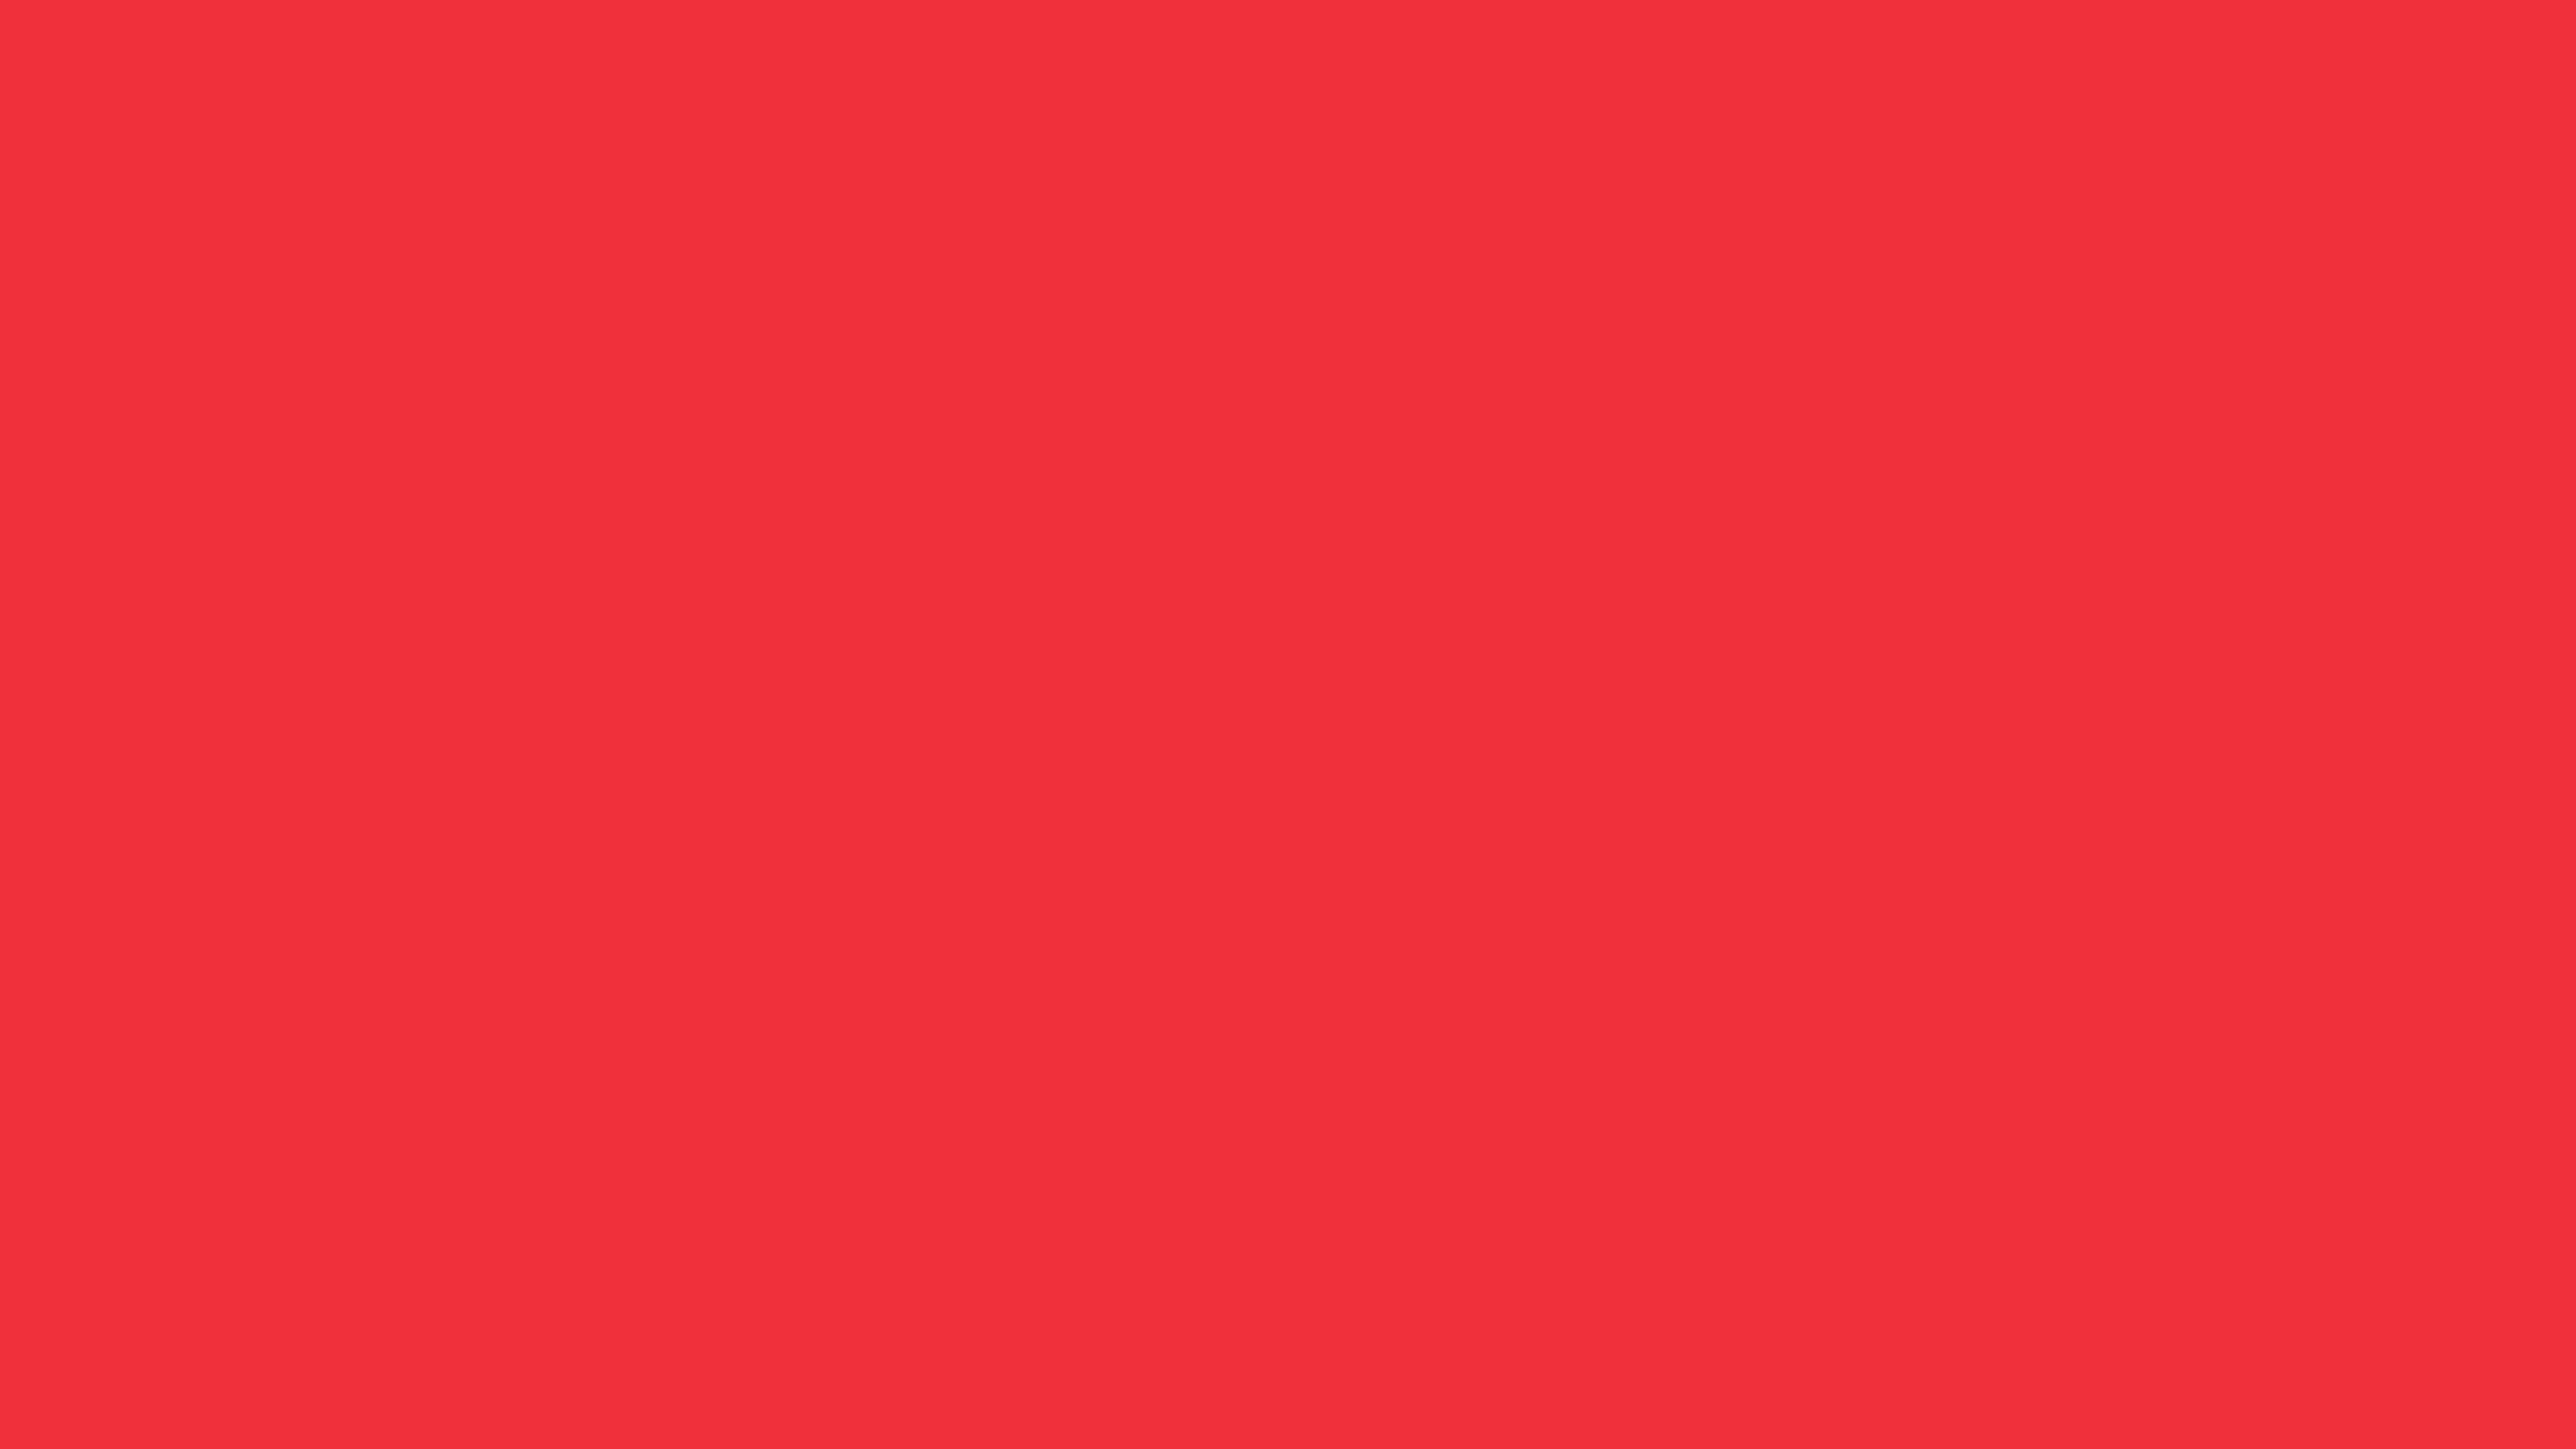 5120x2880 Deep Carmine Pink Solid Color Background